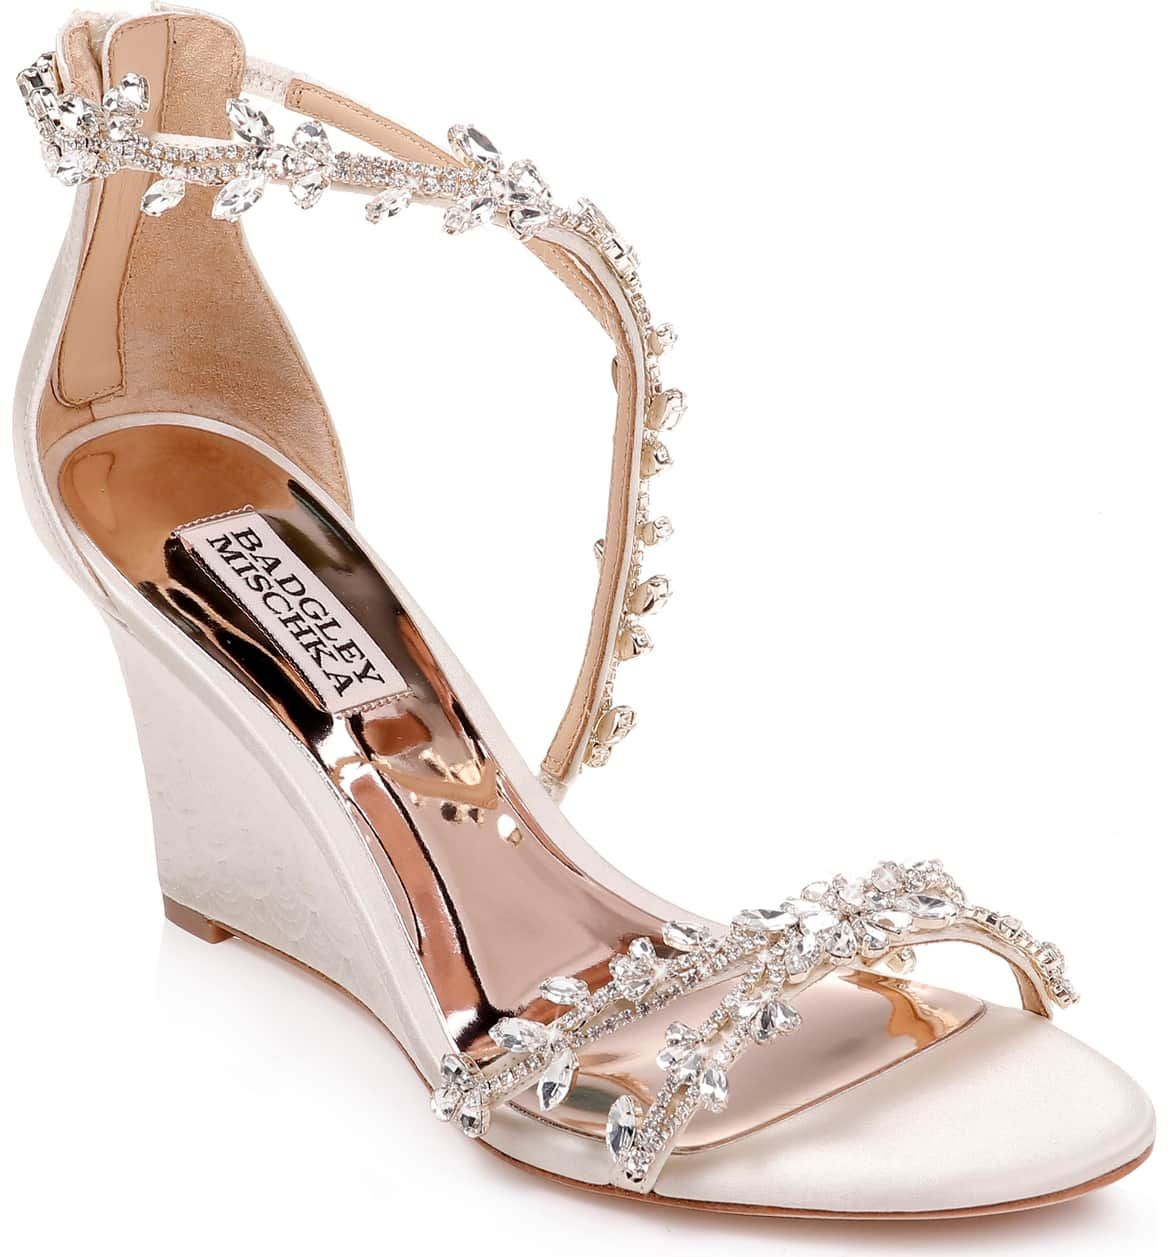 Feather Crystal Embellished Wedge Sandal, Main, color, IVORY